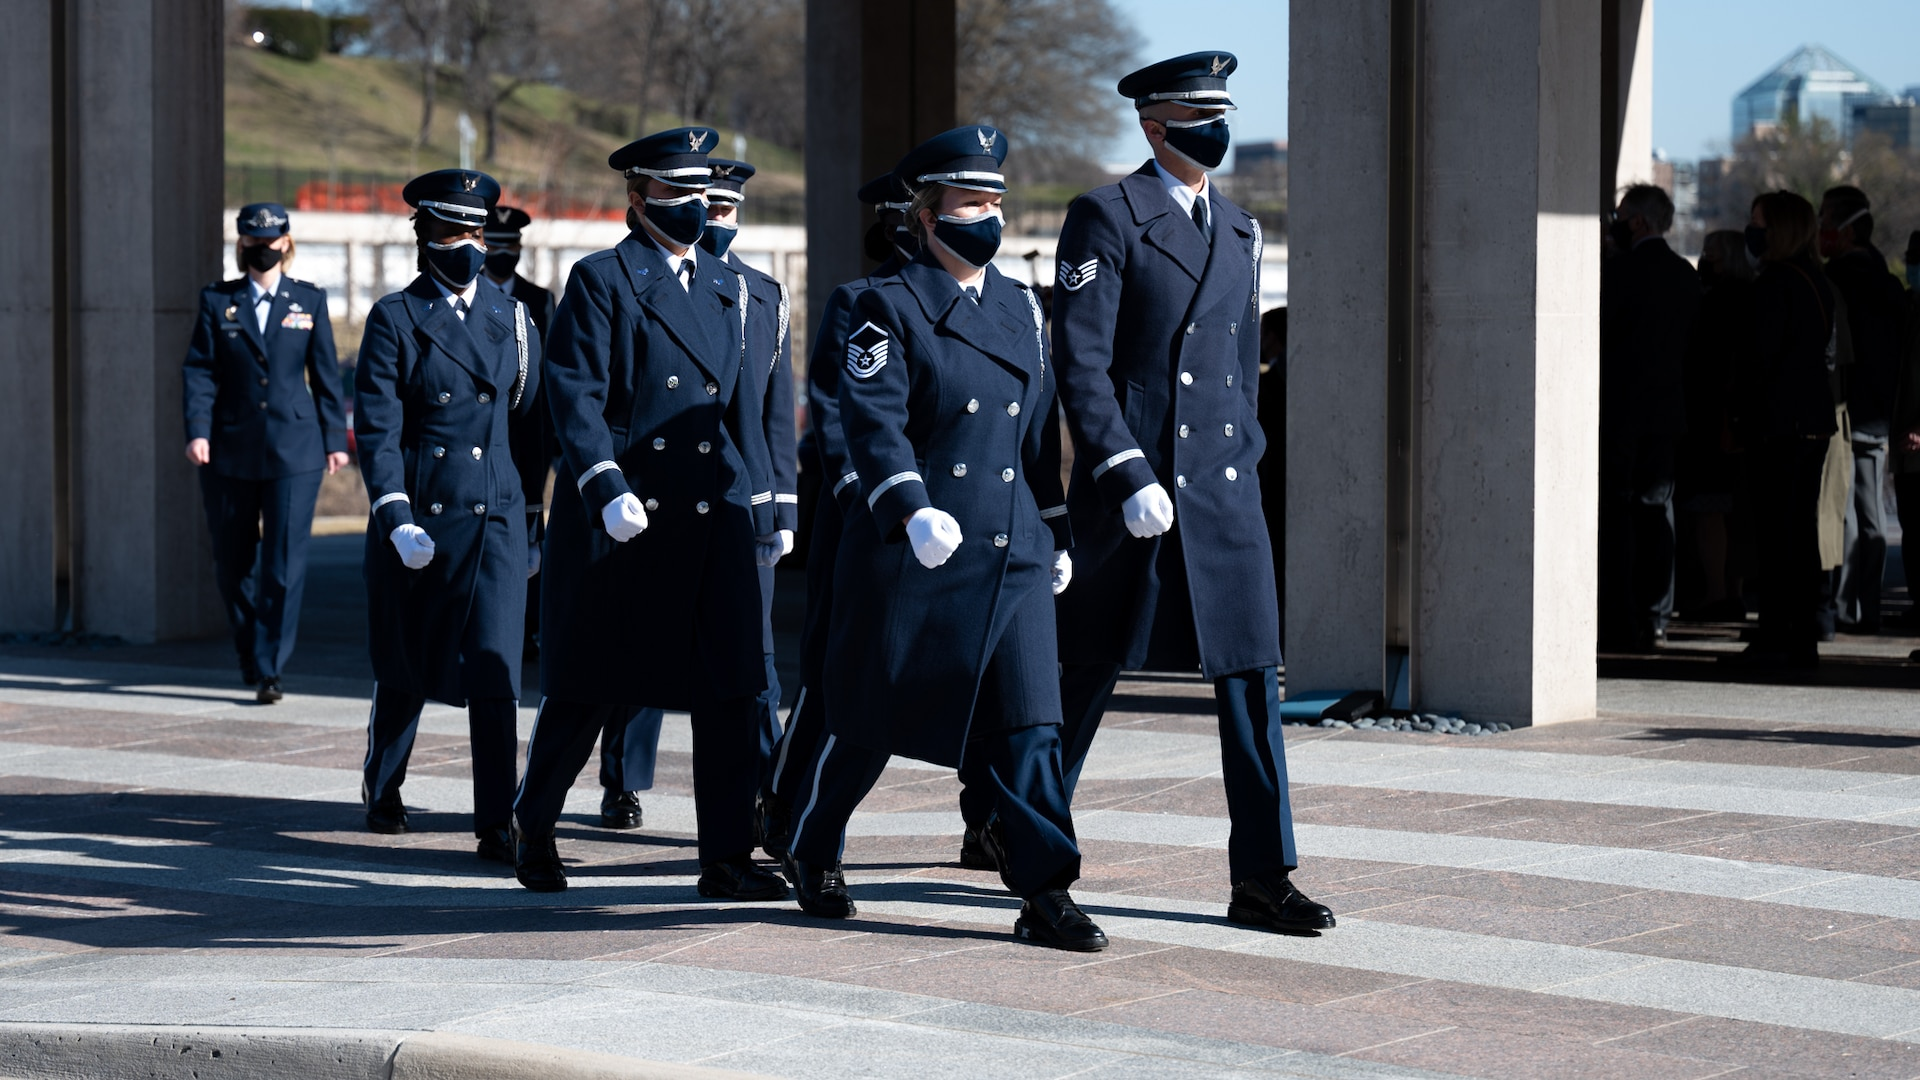 United States Honor Guard Pallbearers march in formation as part of modified military funeral honors with funeral escort for U.S. Air Force Lt. Col. Bruce Burns in Section 82 of Arlington National Cemetery, Arlington, Virginia, March 22, 2021. Burns served in the Air Force from 1962 to 1982. His spouse, Janet Burns, received the flag from his service. The funeral was an historic occasion for the United States Honor Guard, with the largest female presence on a pallbearers team in Air Force history. (U.S. Air Force photo by Staff Sgt. Stuart Bright)